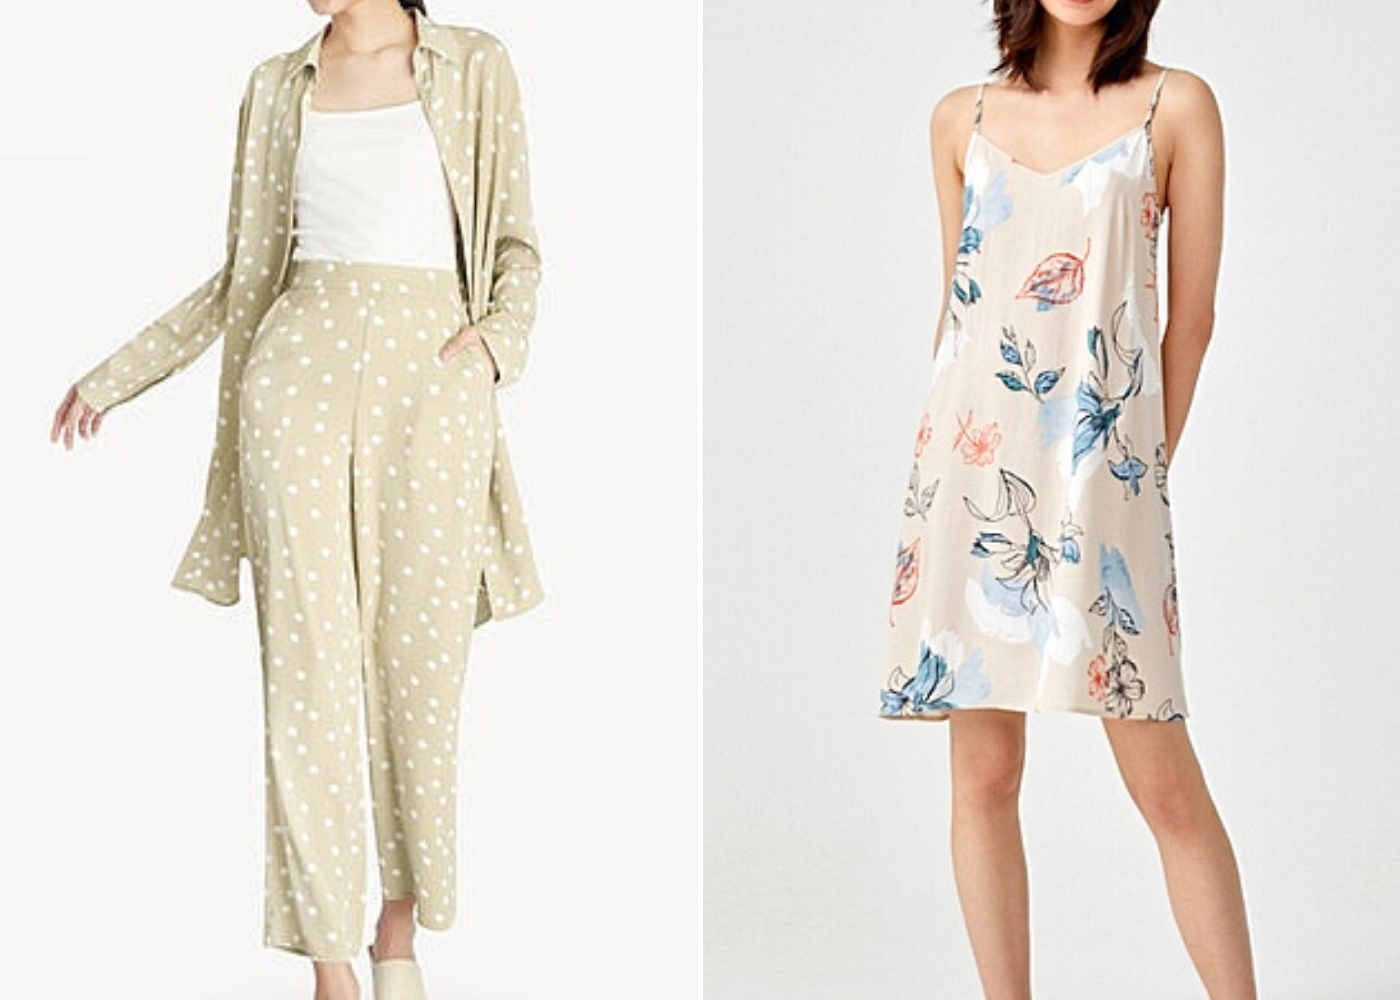 Pyjamas | Stay-in outfits for lounging around the house